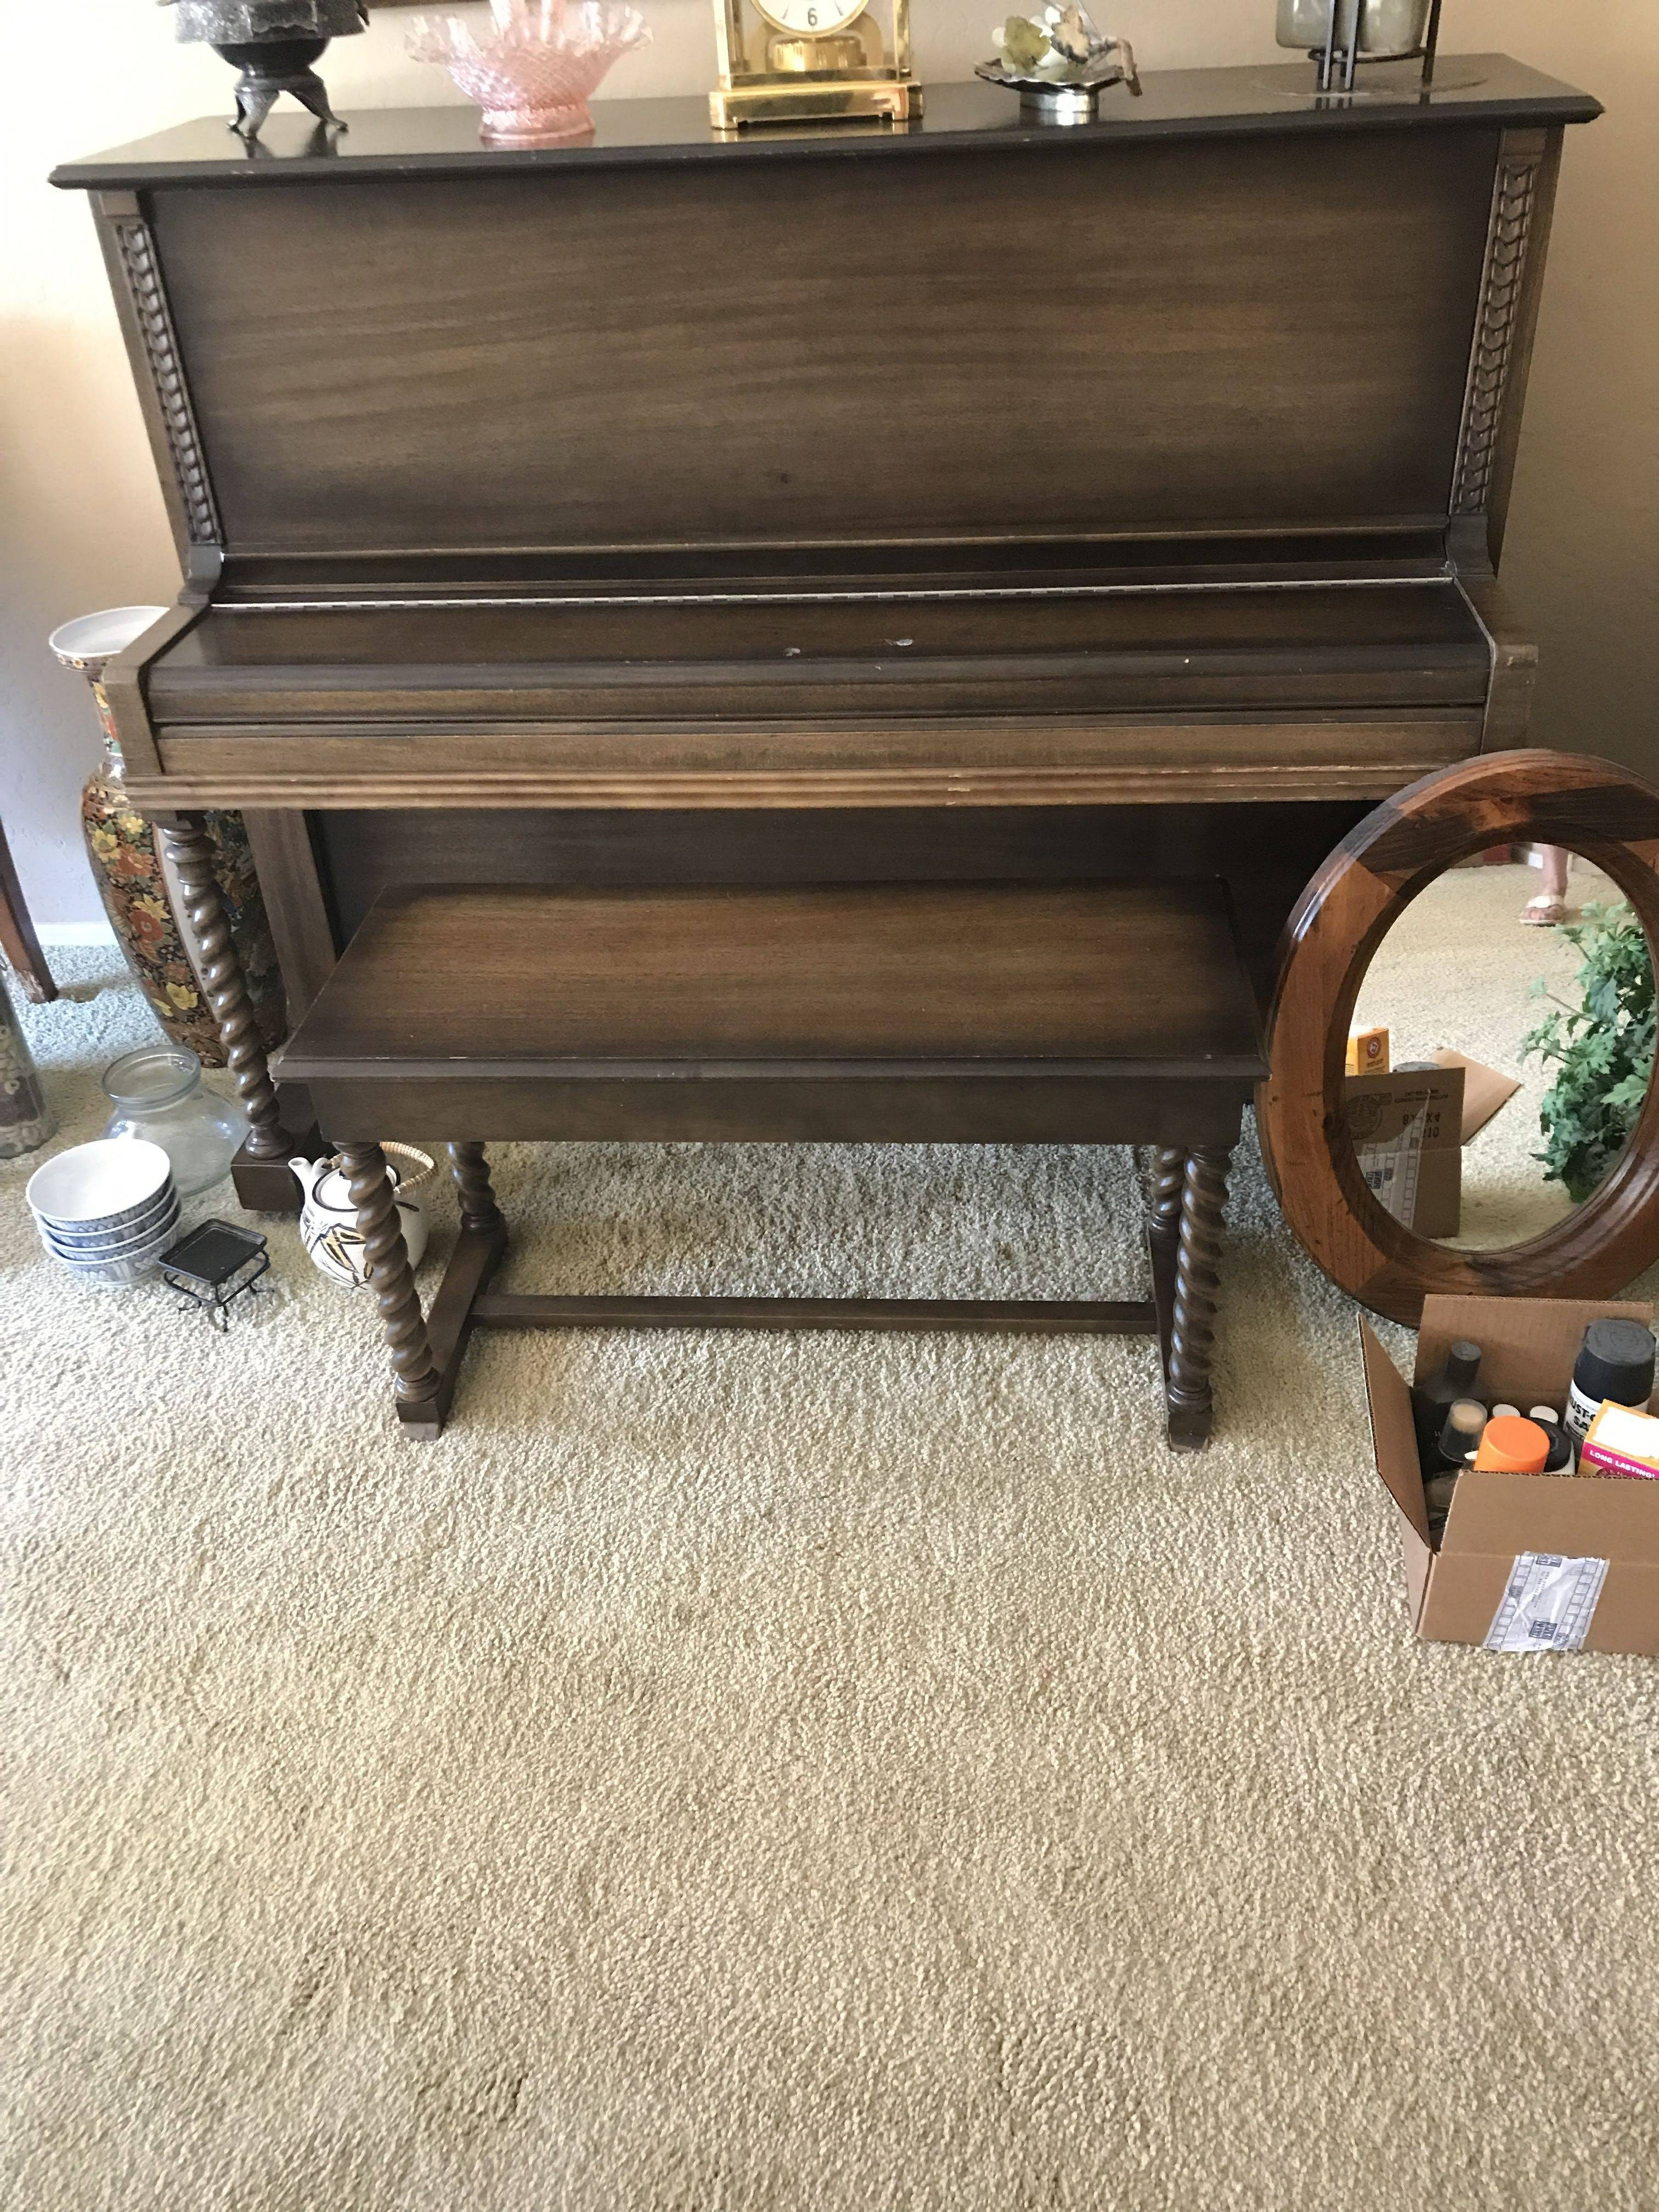 How to Clean Antique Wood Furniture New Impeccably Clean Home with High End Furnishings Boyds Az